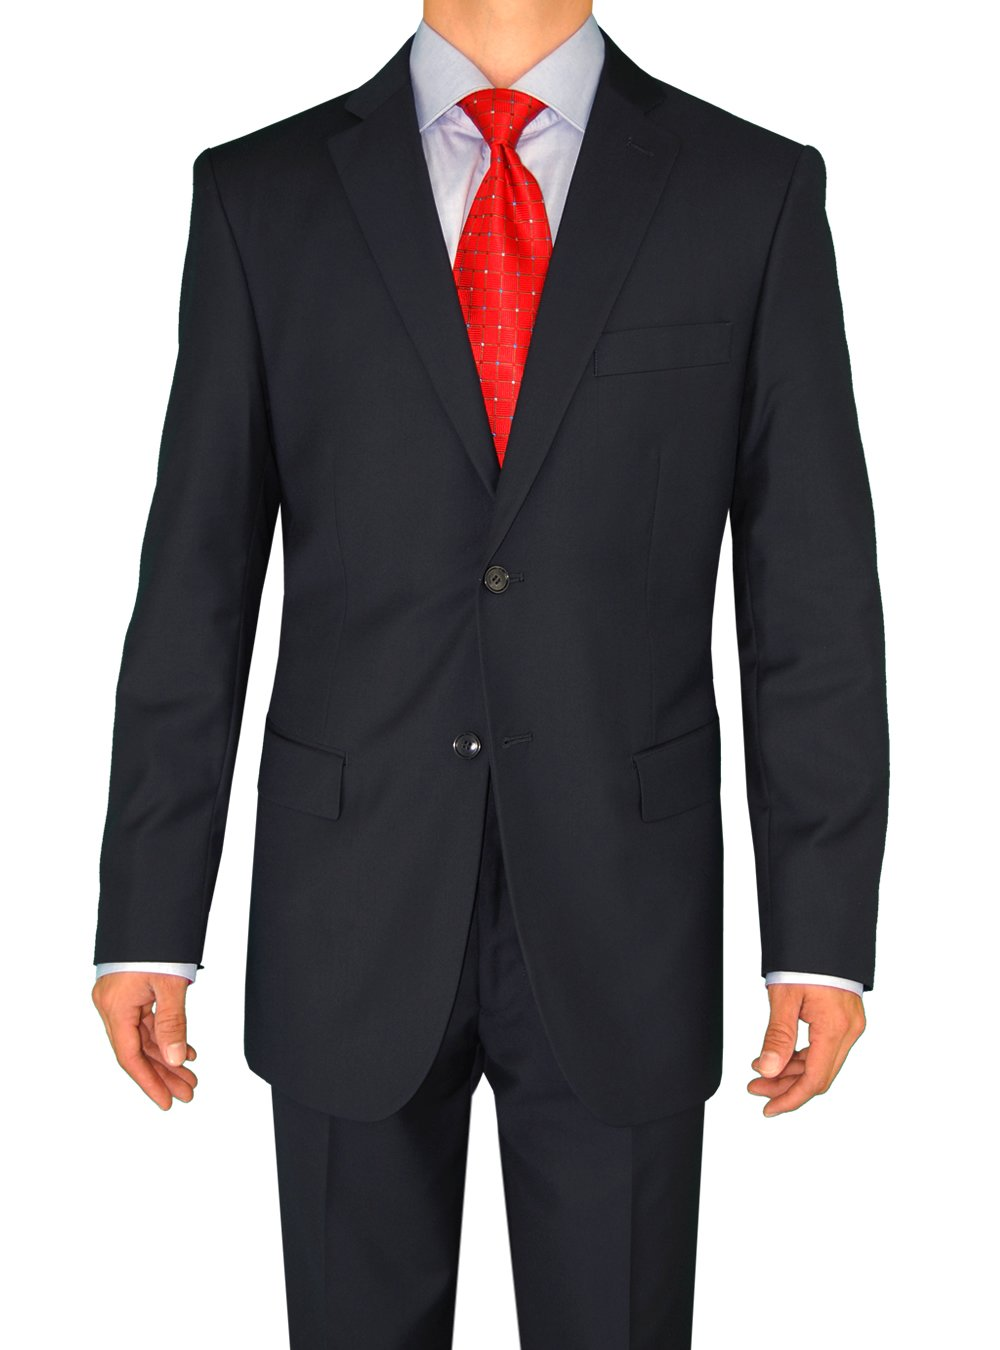 DTI DARYA TRADING Fuomo Classic Men's 2 Button Business Suits 4 Colors (46 Long US/56L EU/W 40'',Navy)